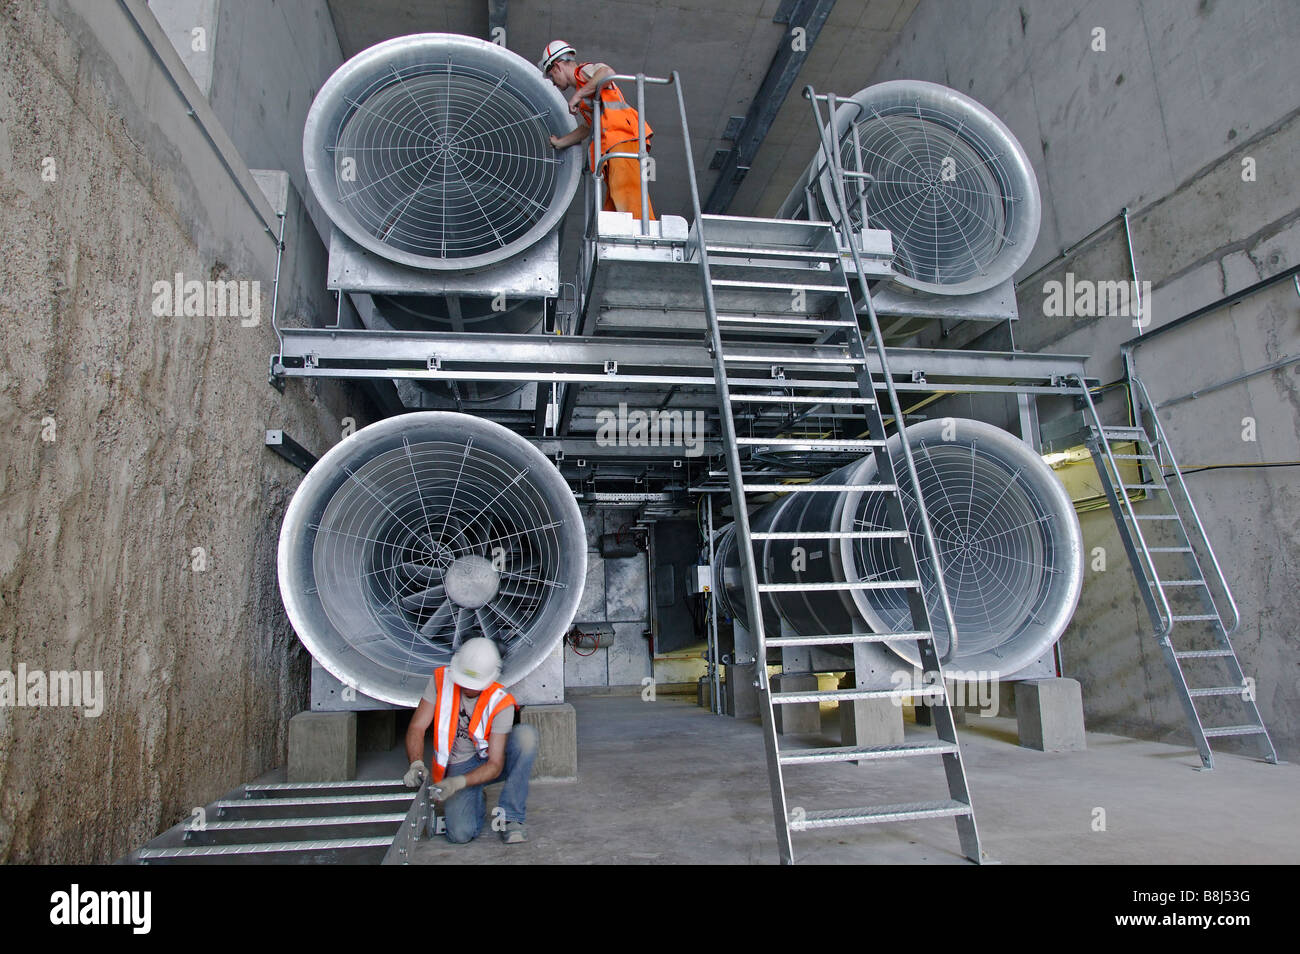 Tunnel Ventilation Fans : Engineers inspecting ventilation fans in high speed